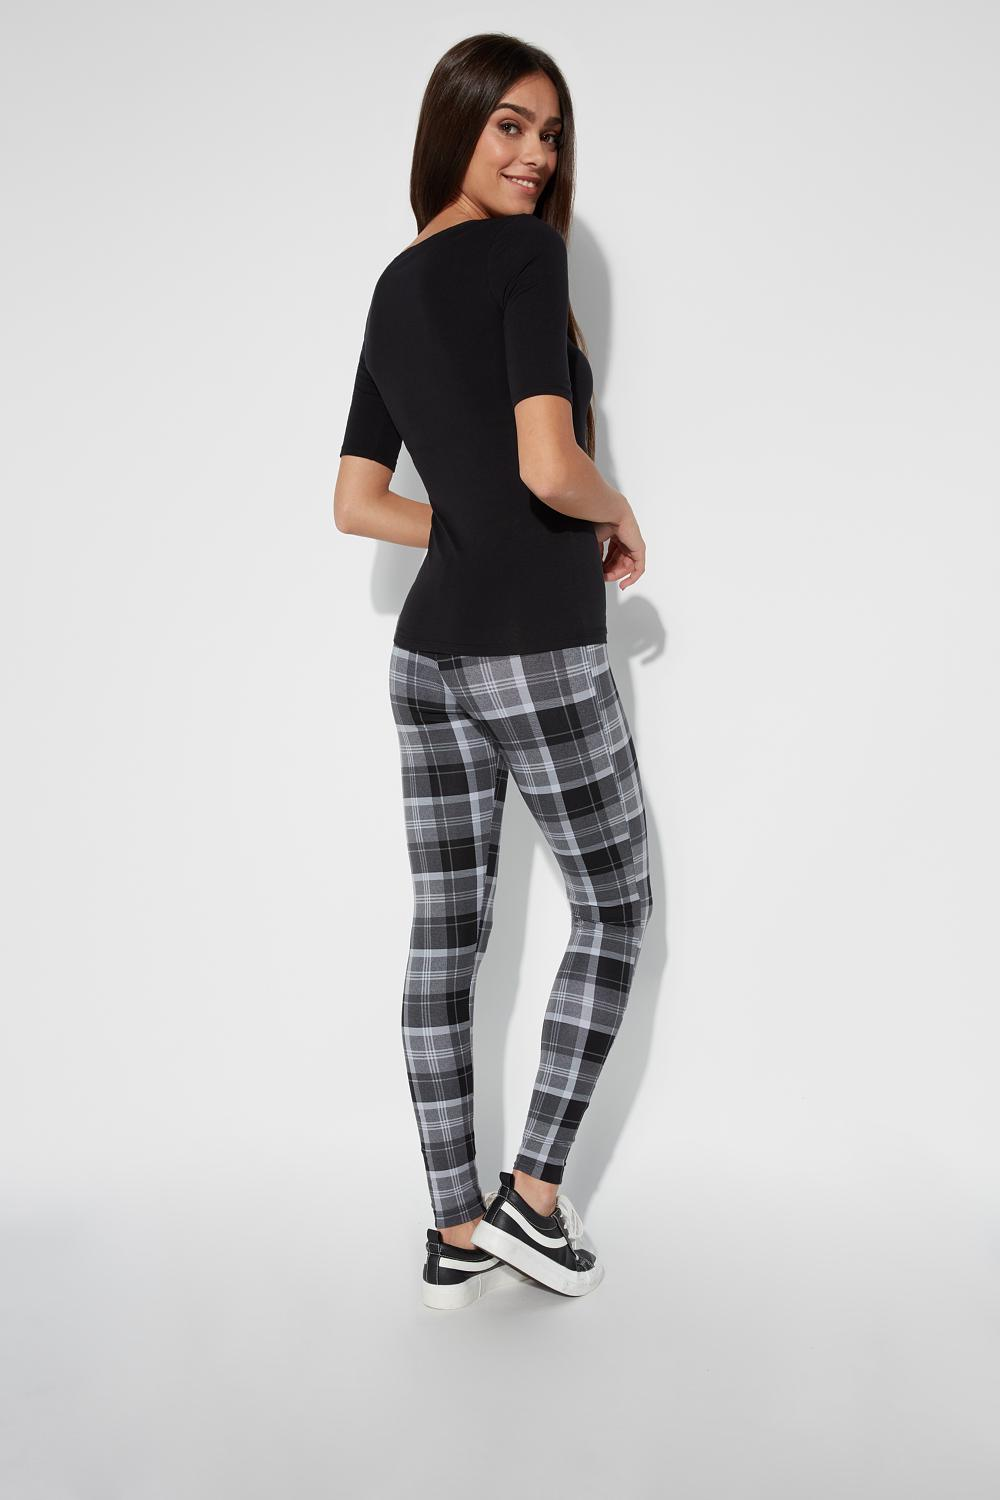 Leggings Deportivos Estampados